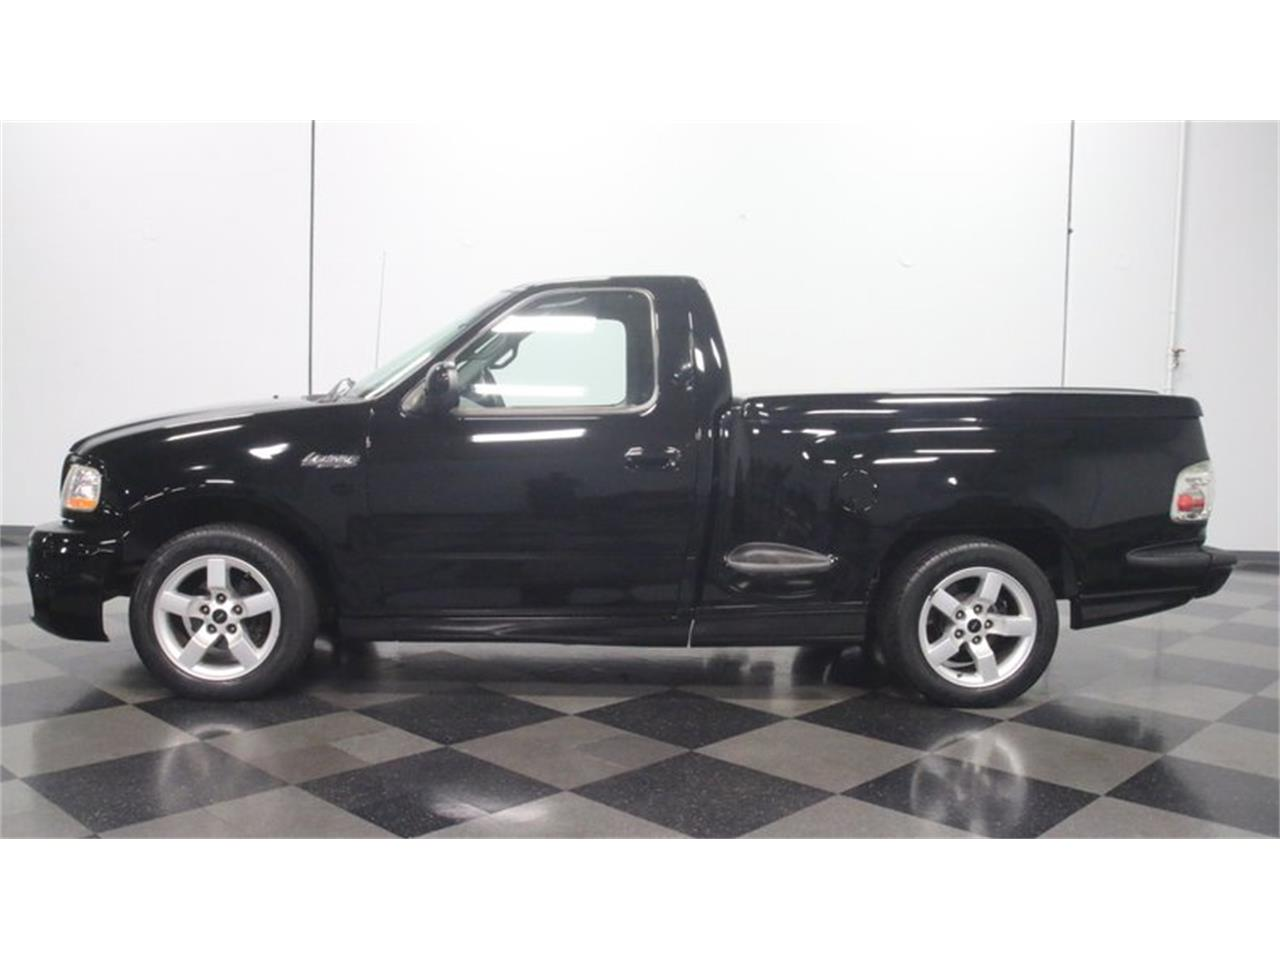 2001 Ford F150 for sale in Lithia Springs, GA – photo 2